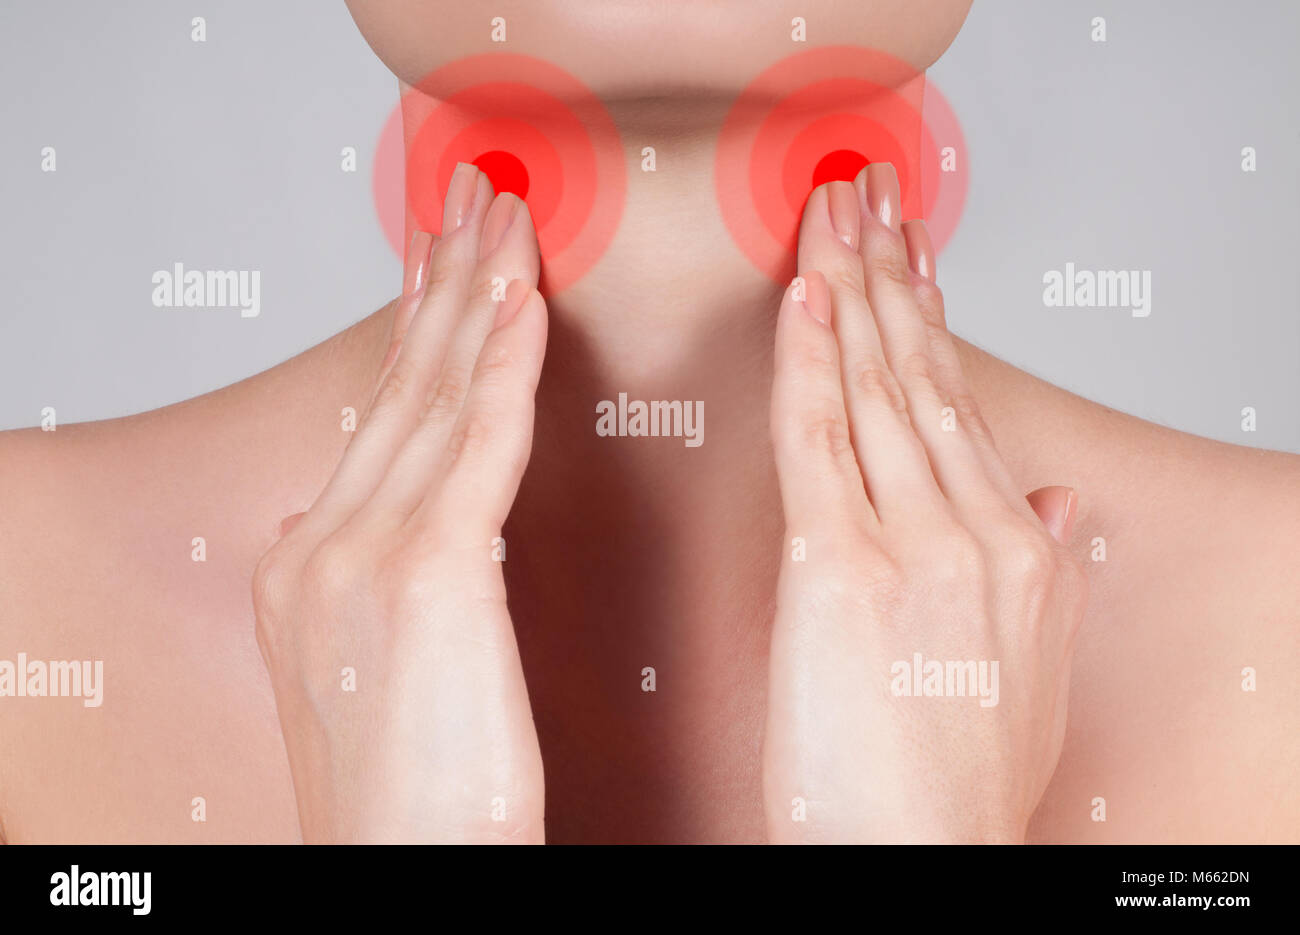 Pain throat concept  Young woman has sore throat touching